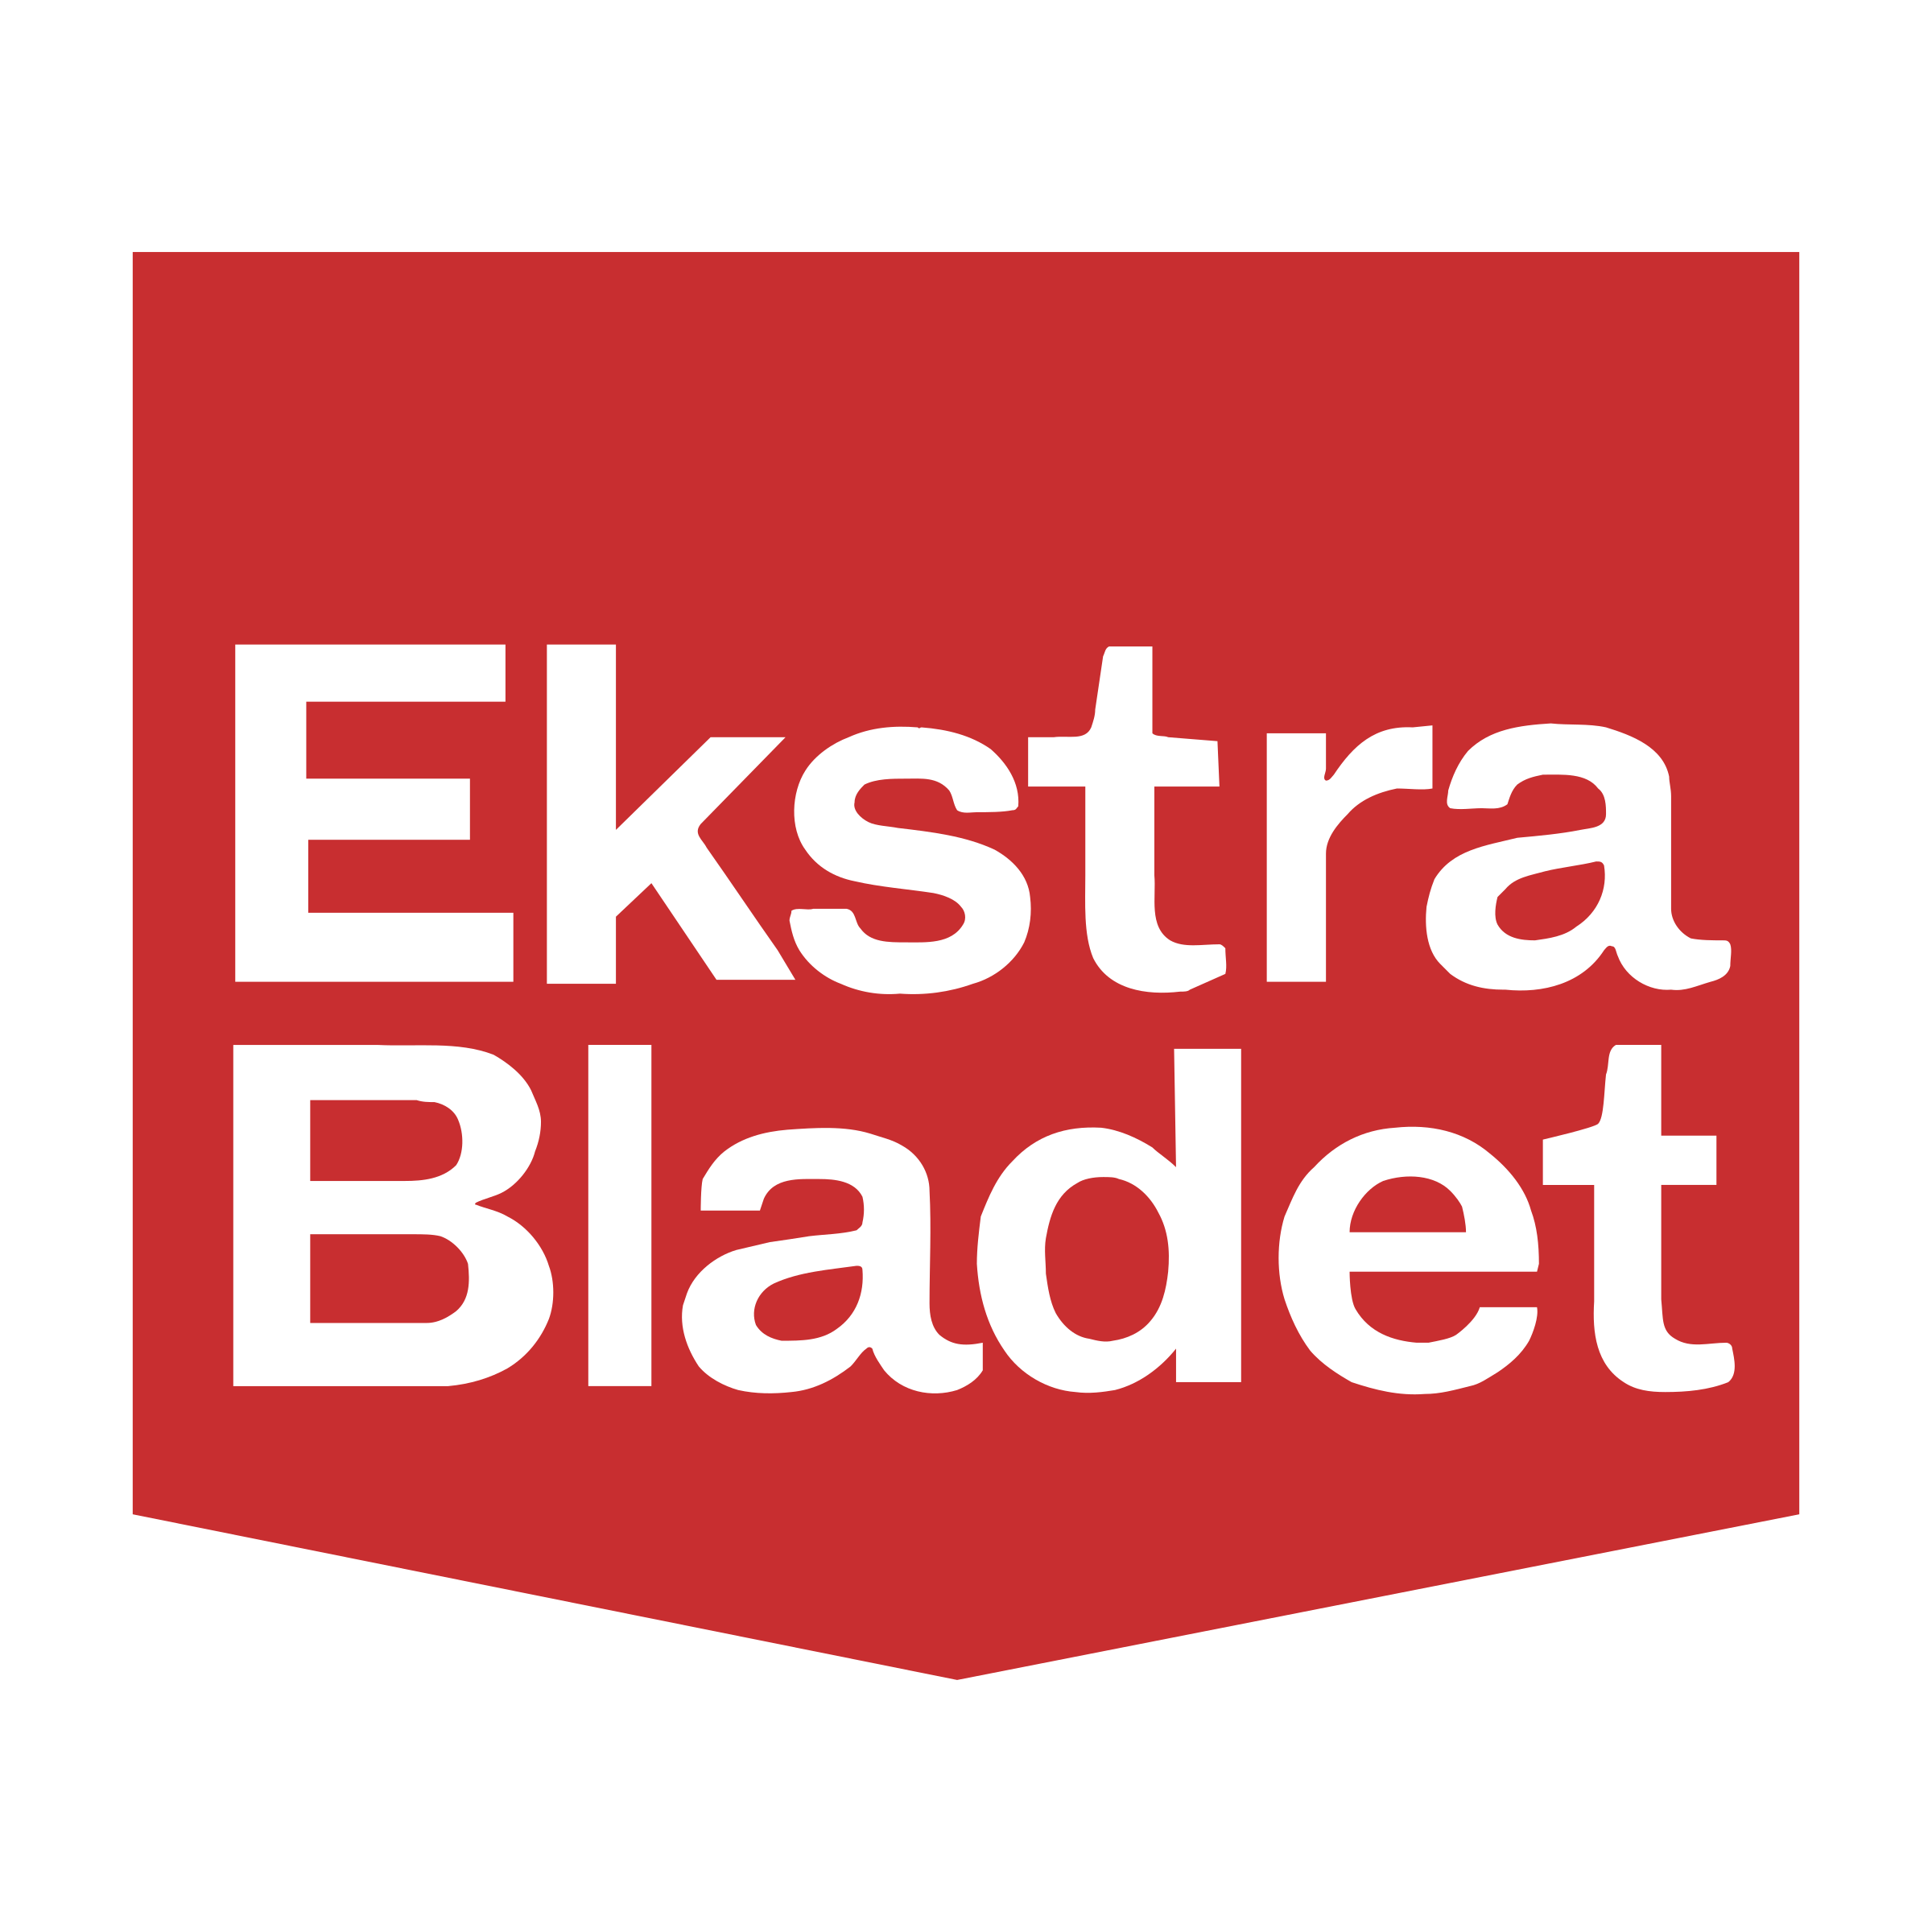 Ekstra bladet side girls